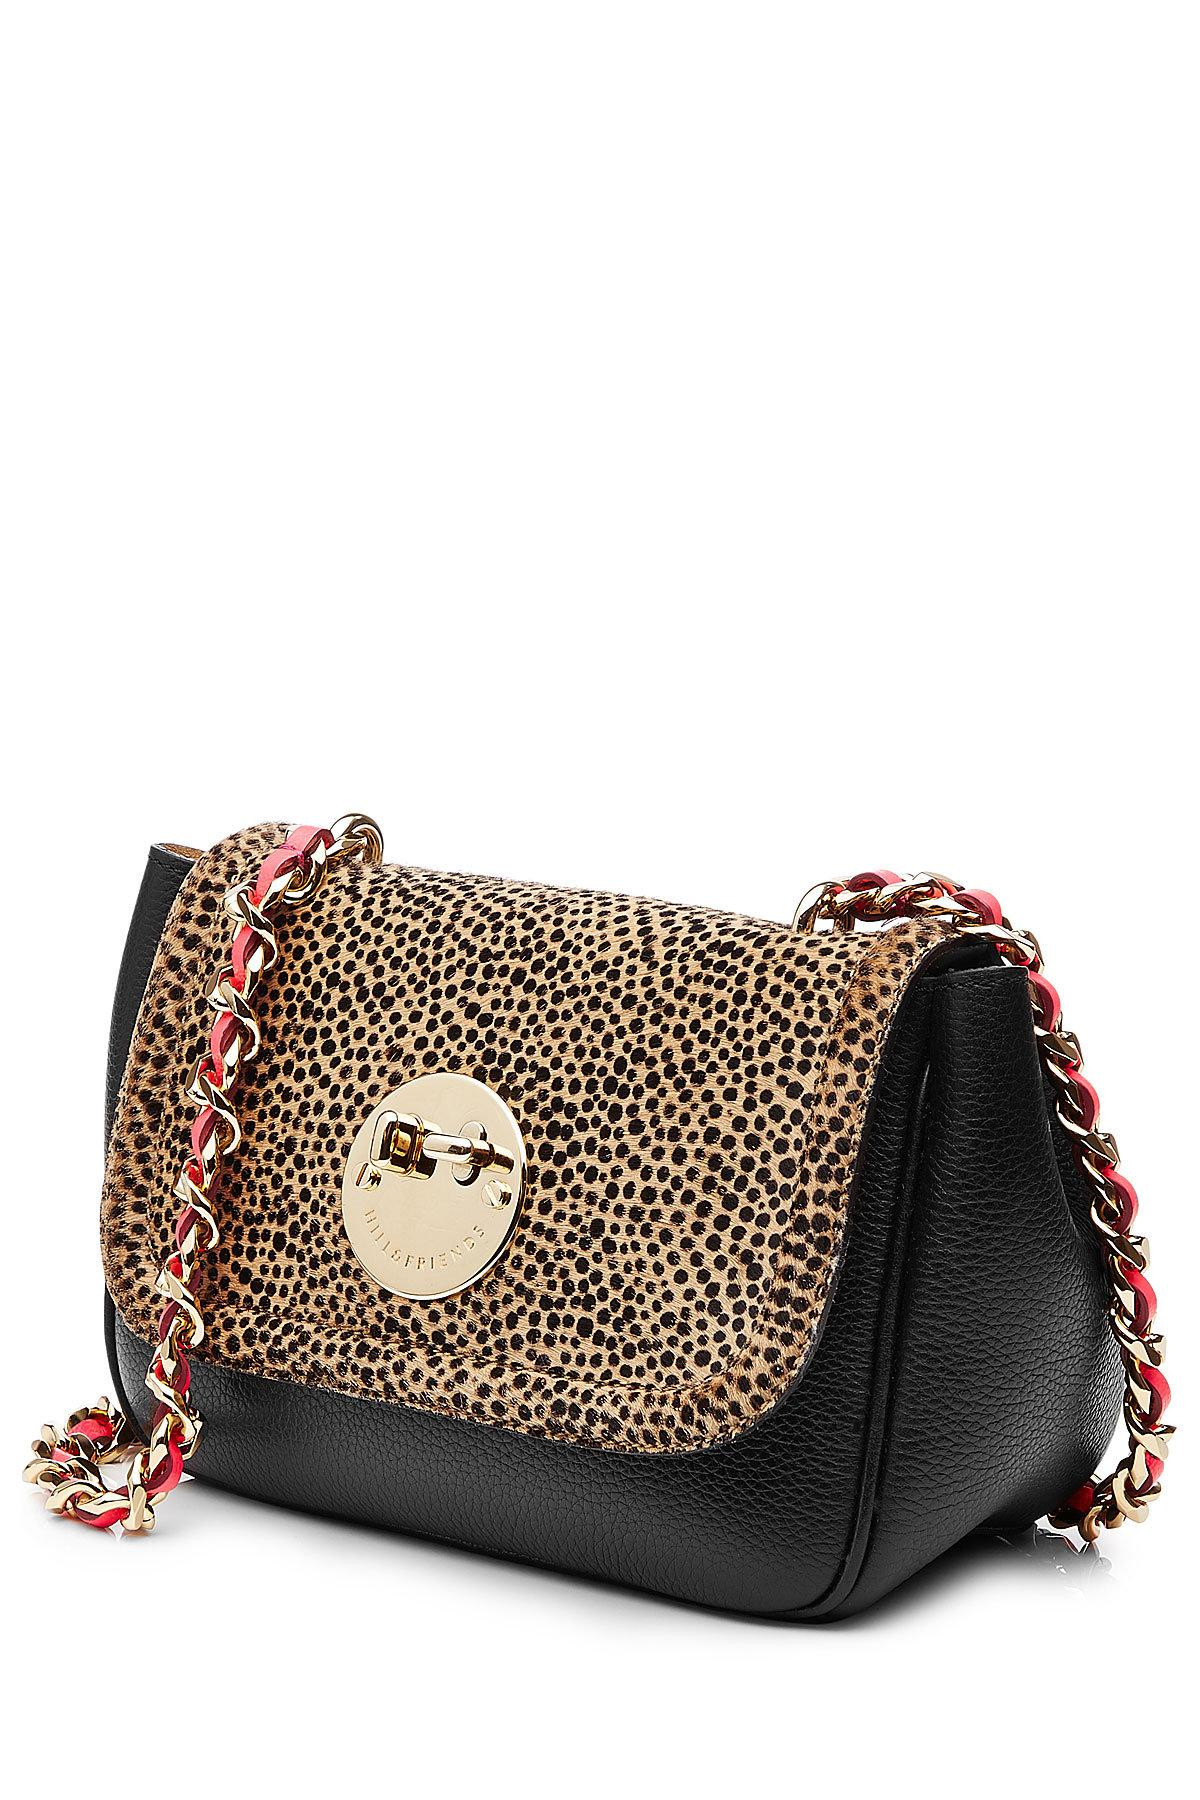 a1d9203b18d2 Lyst - Hill & Friends Happy Chain Leather And Calf Hair Shoulder Bag